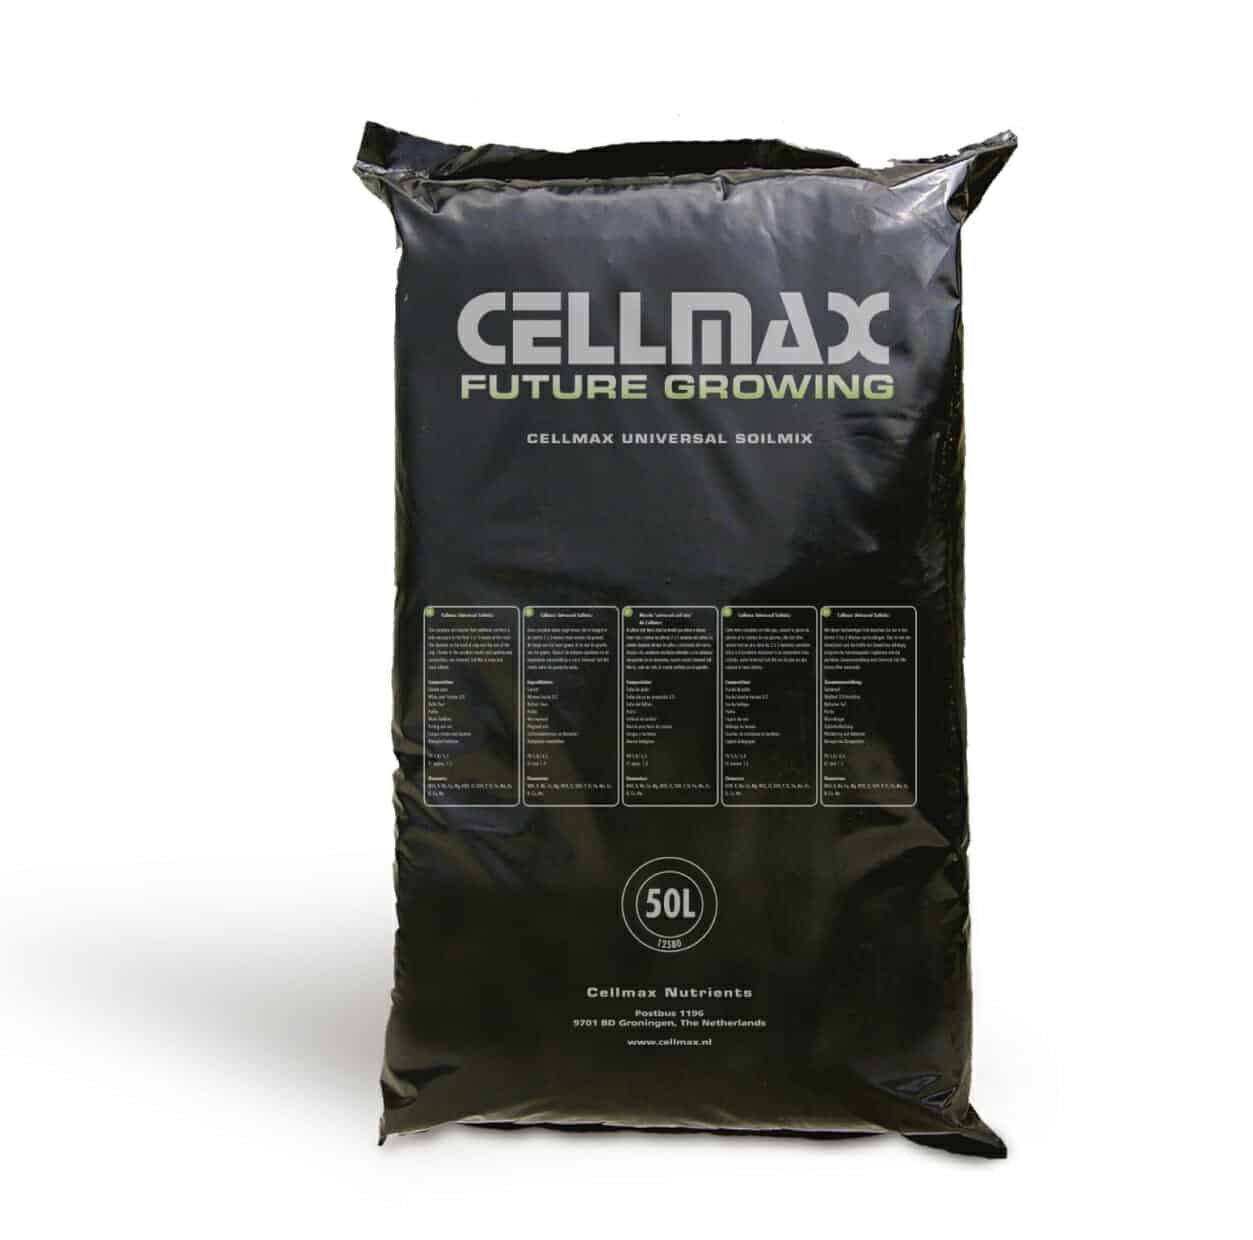 cellmax terra growing universal